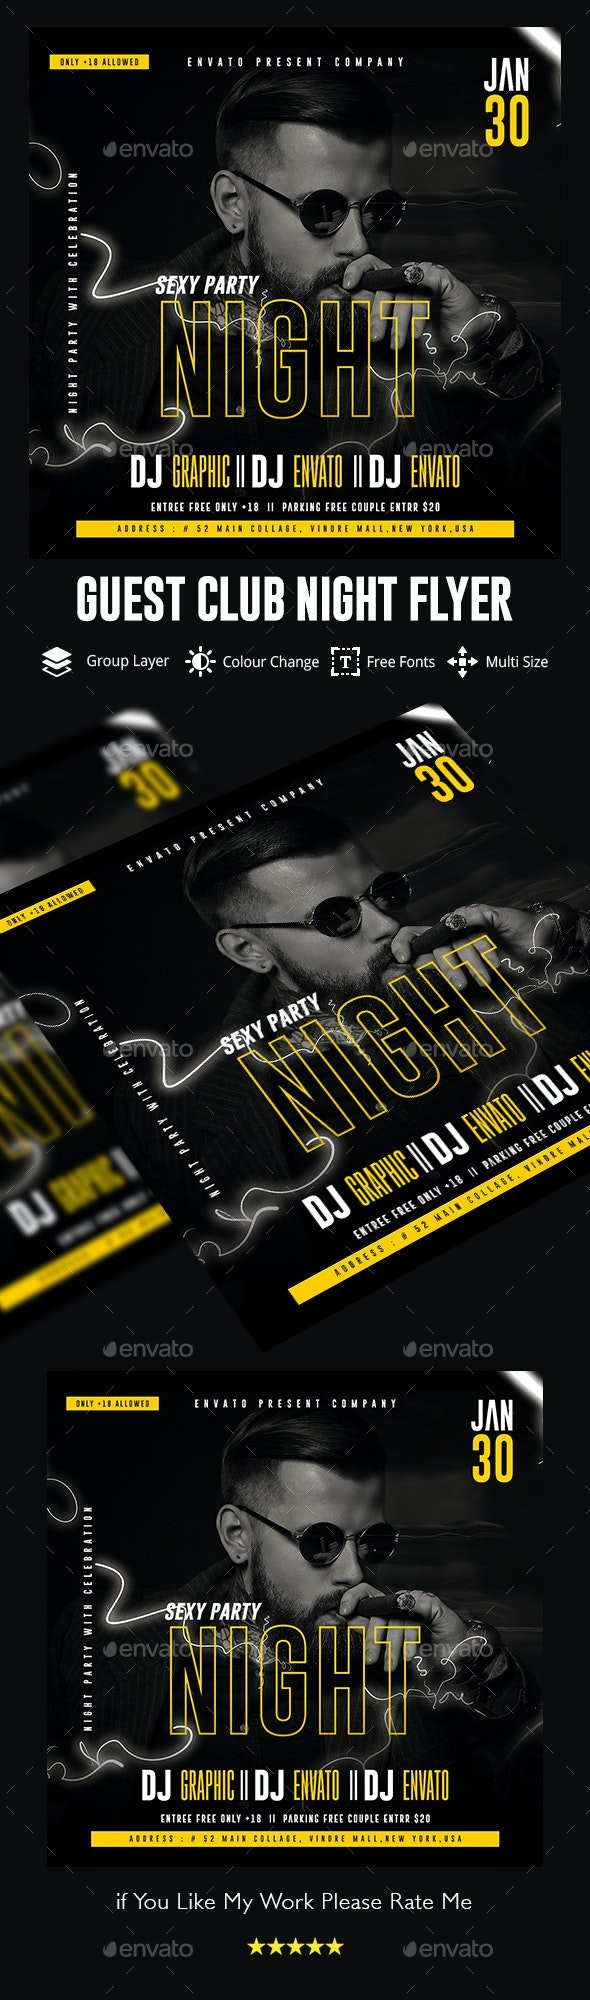 Guest Dj Night Flyer Template - Clubs & Parties Events